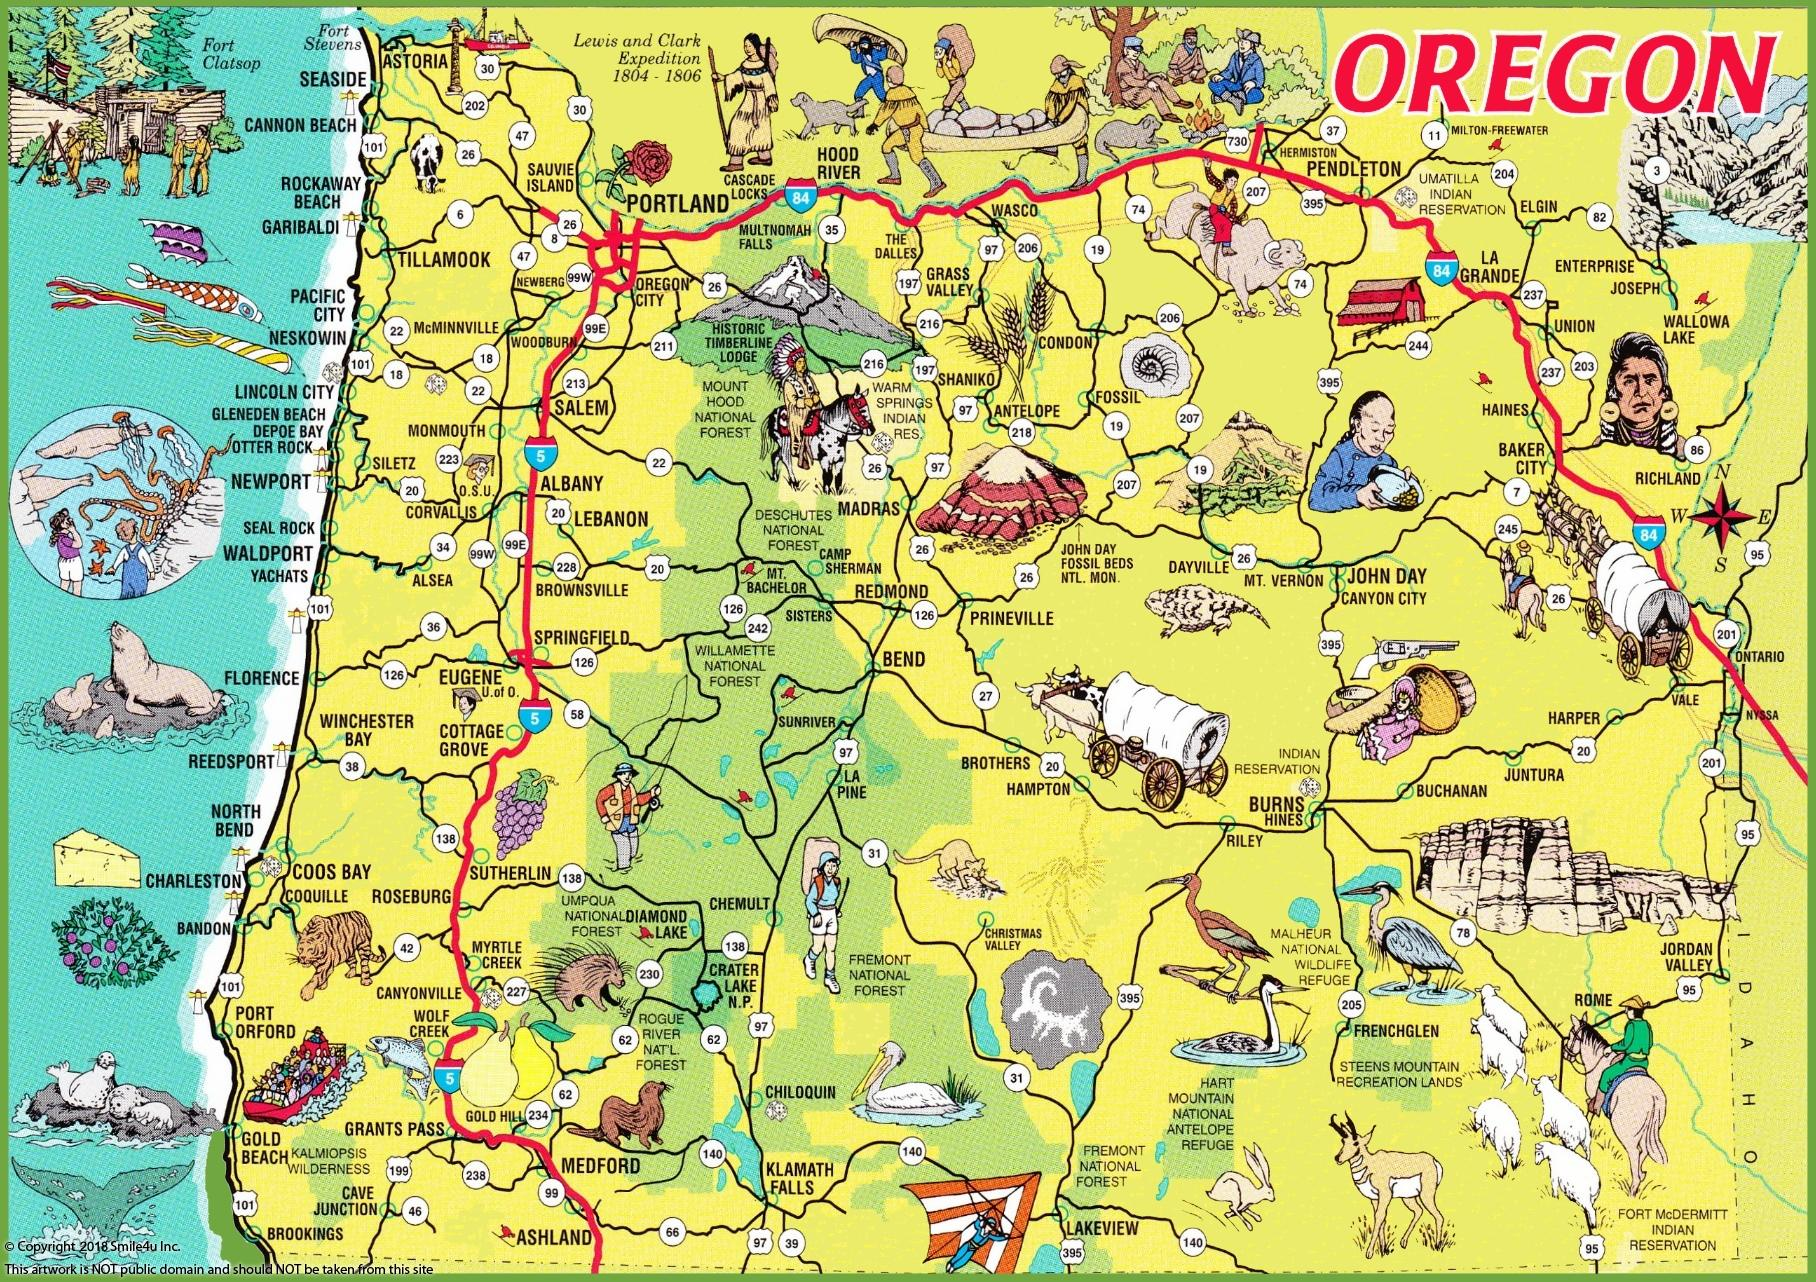 621449_watermarked_pictorial-travel-map-of-oregon.jpg